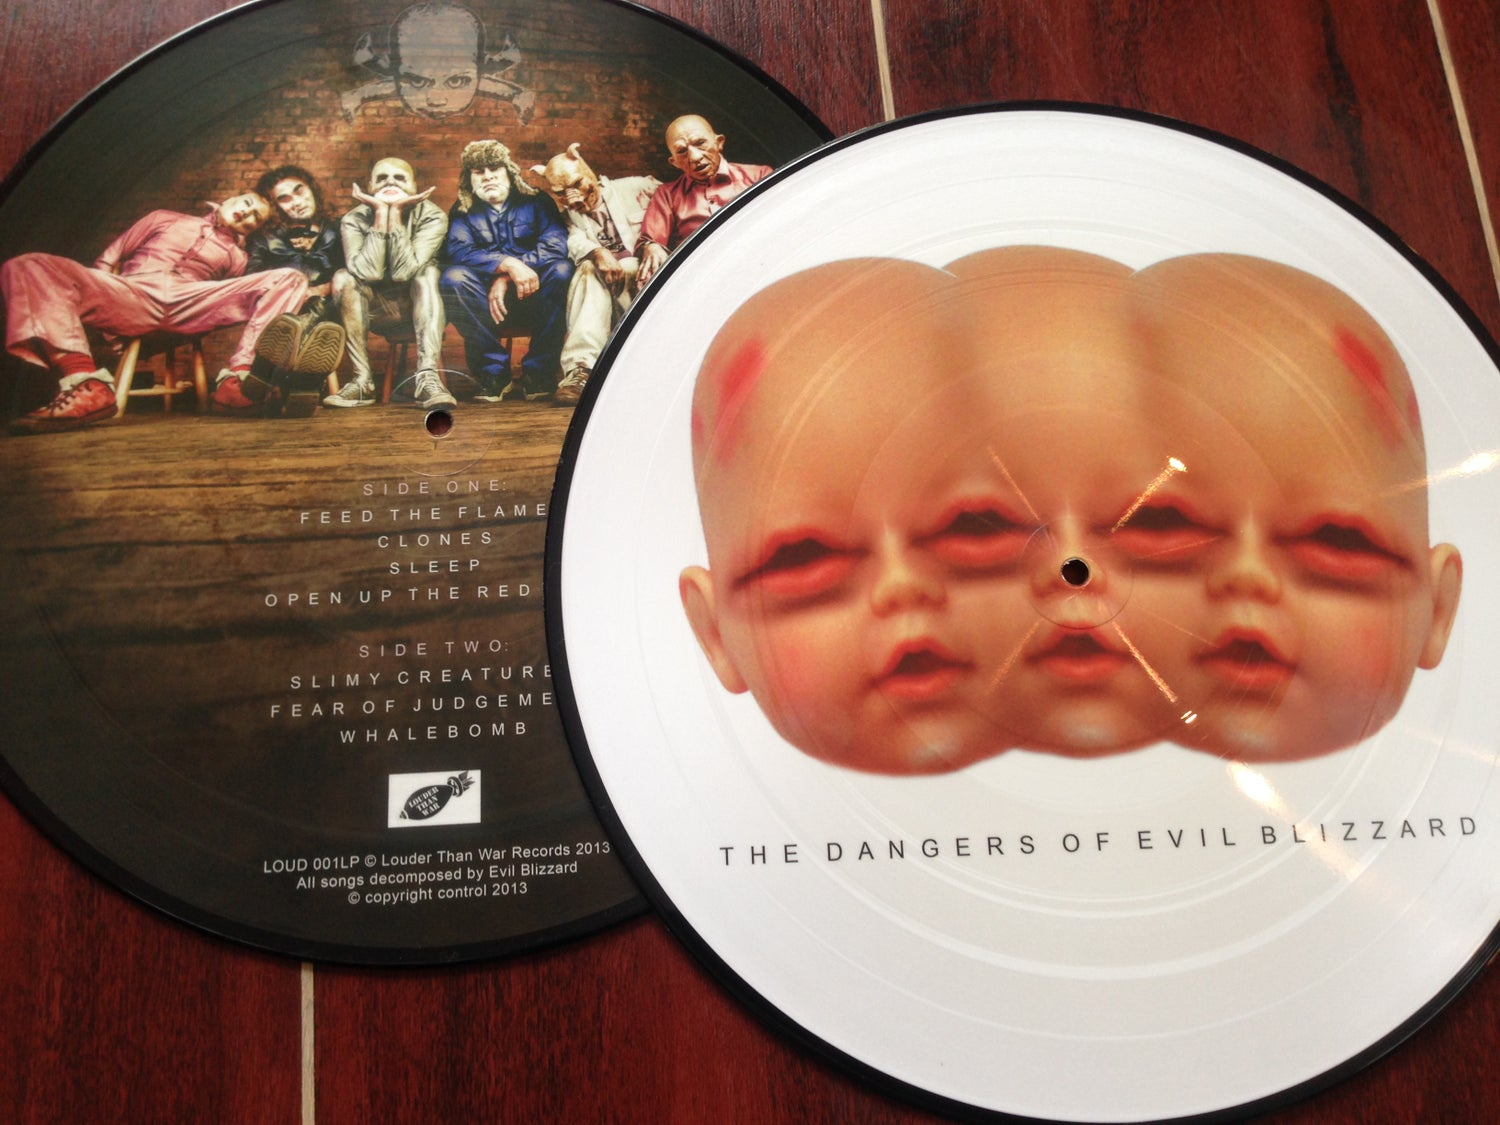 Image of The Dangers Of Evil Blizzard picture disc